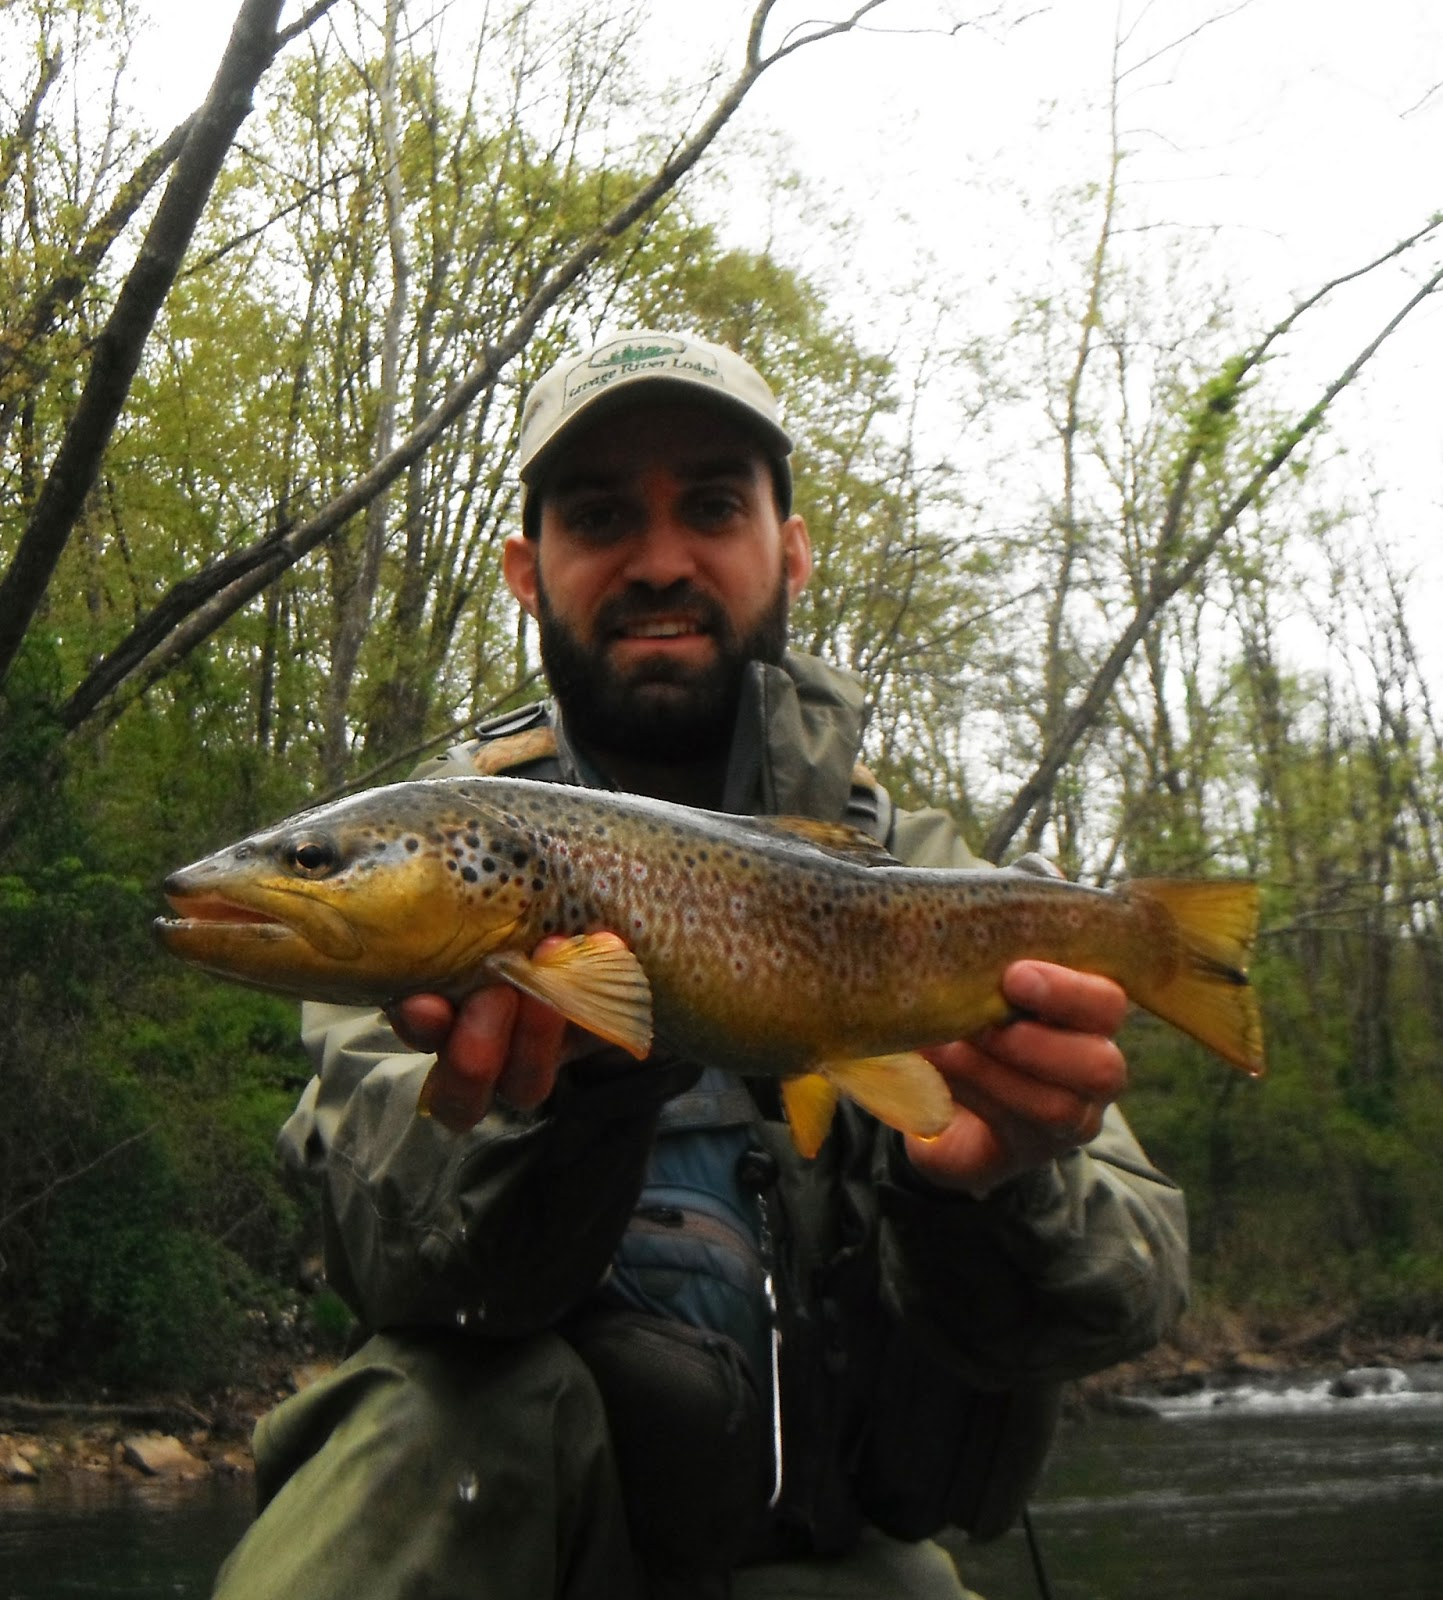 western maryland fly fishing savage river 04 30 2013